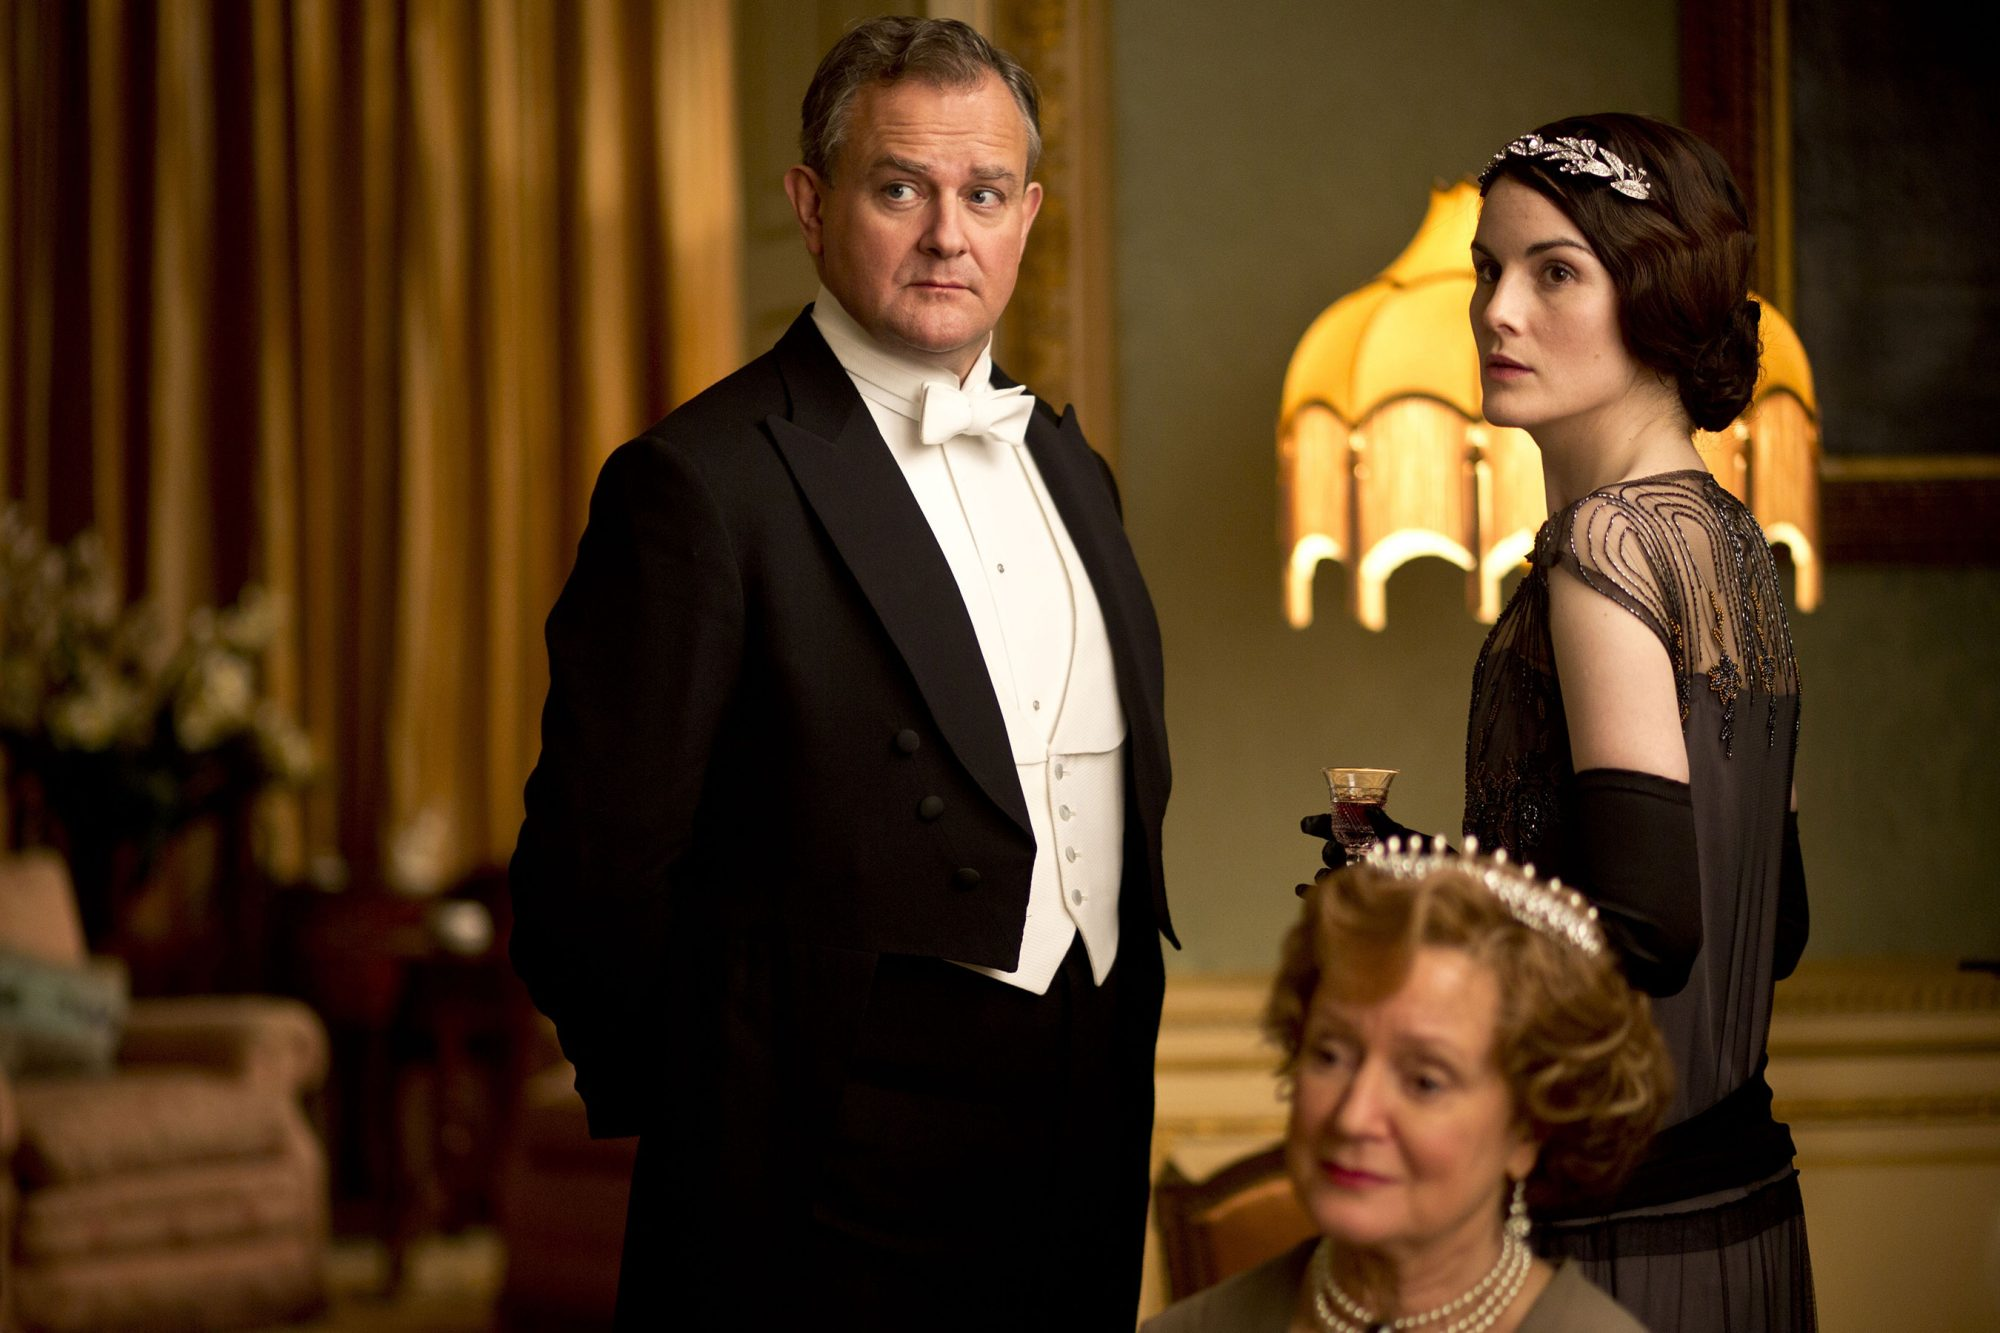 Here's when you can see the 'Downton Abbey' movie